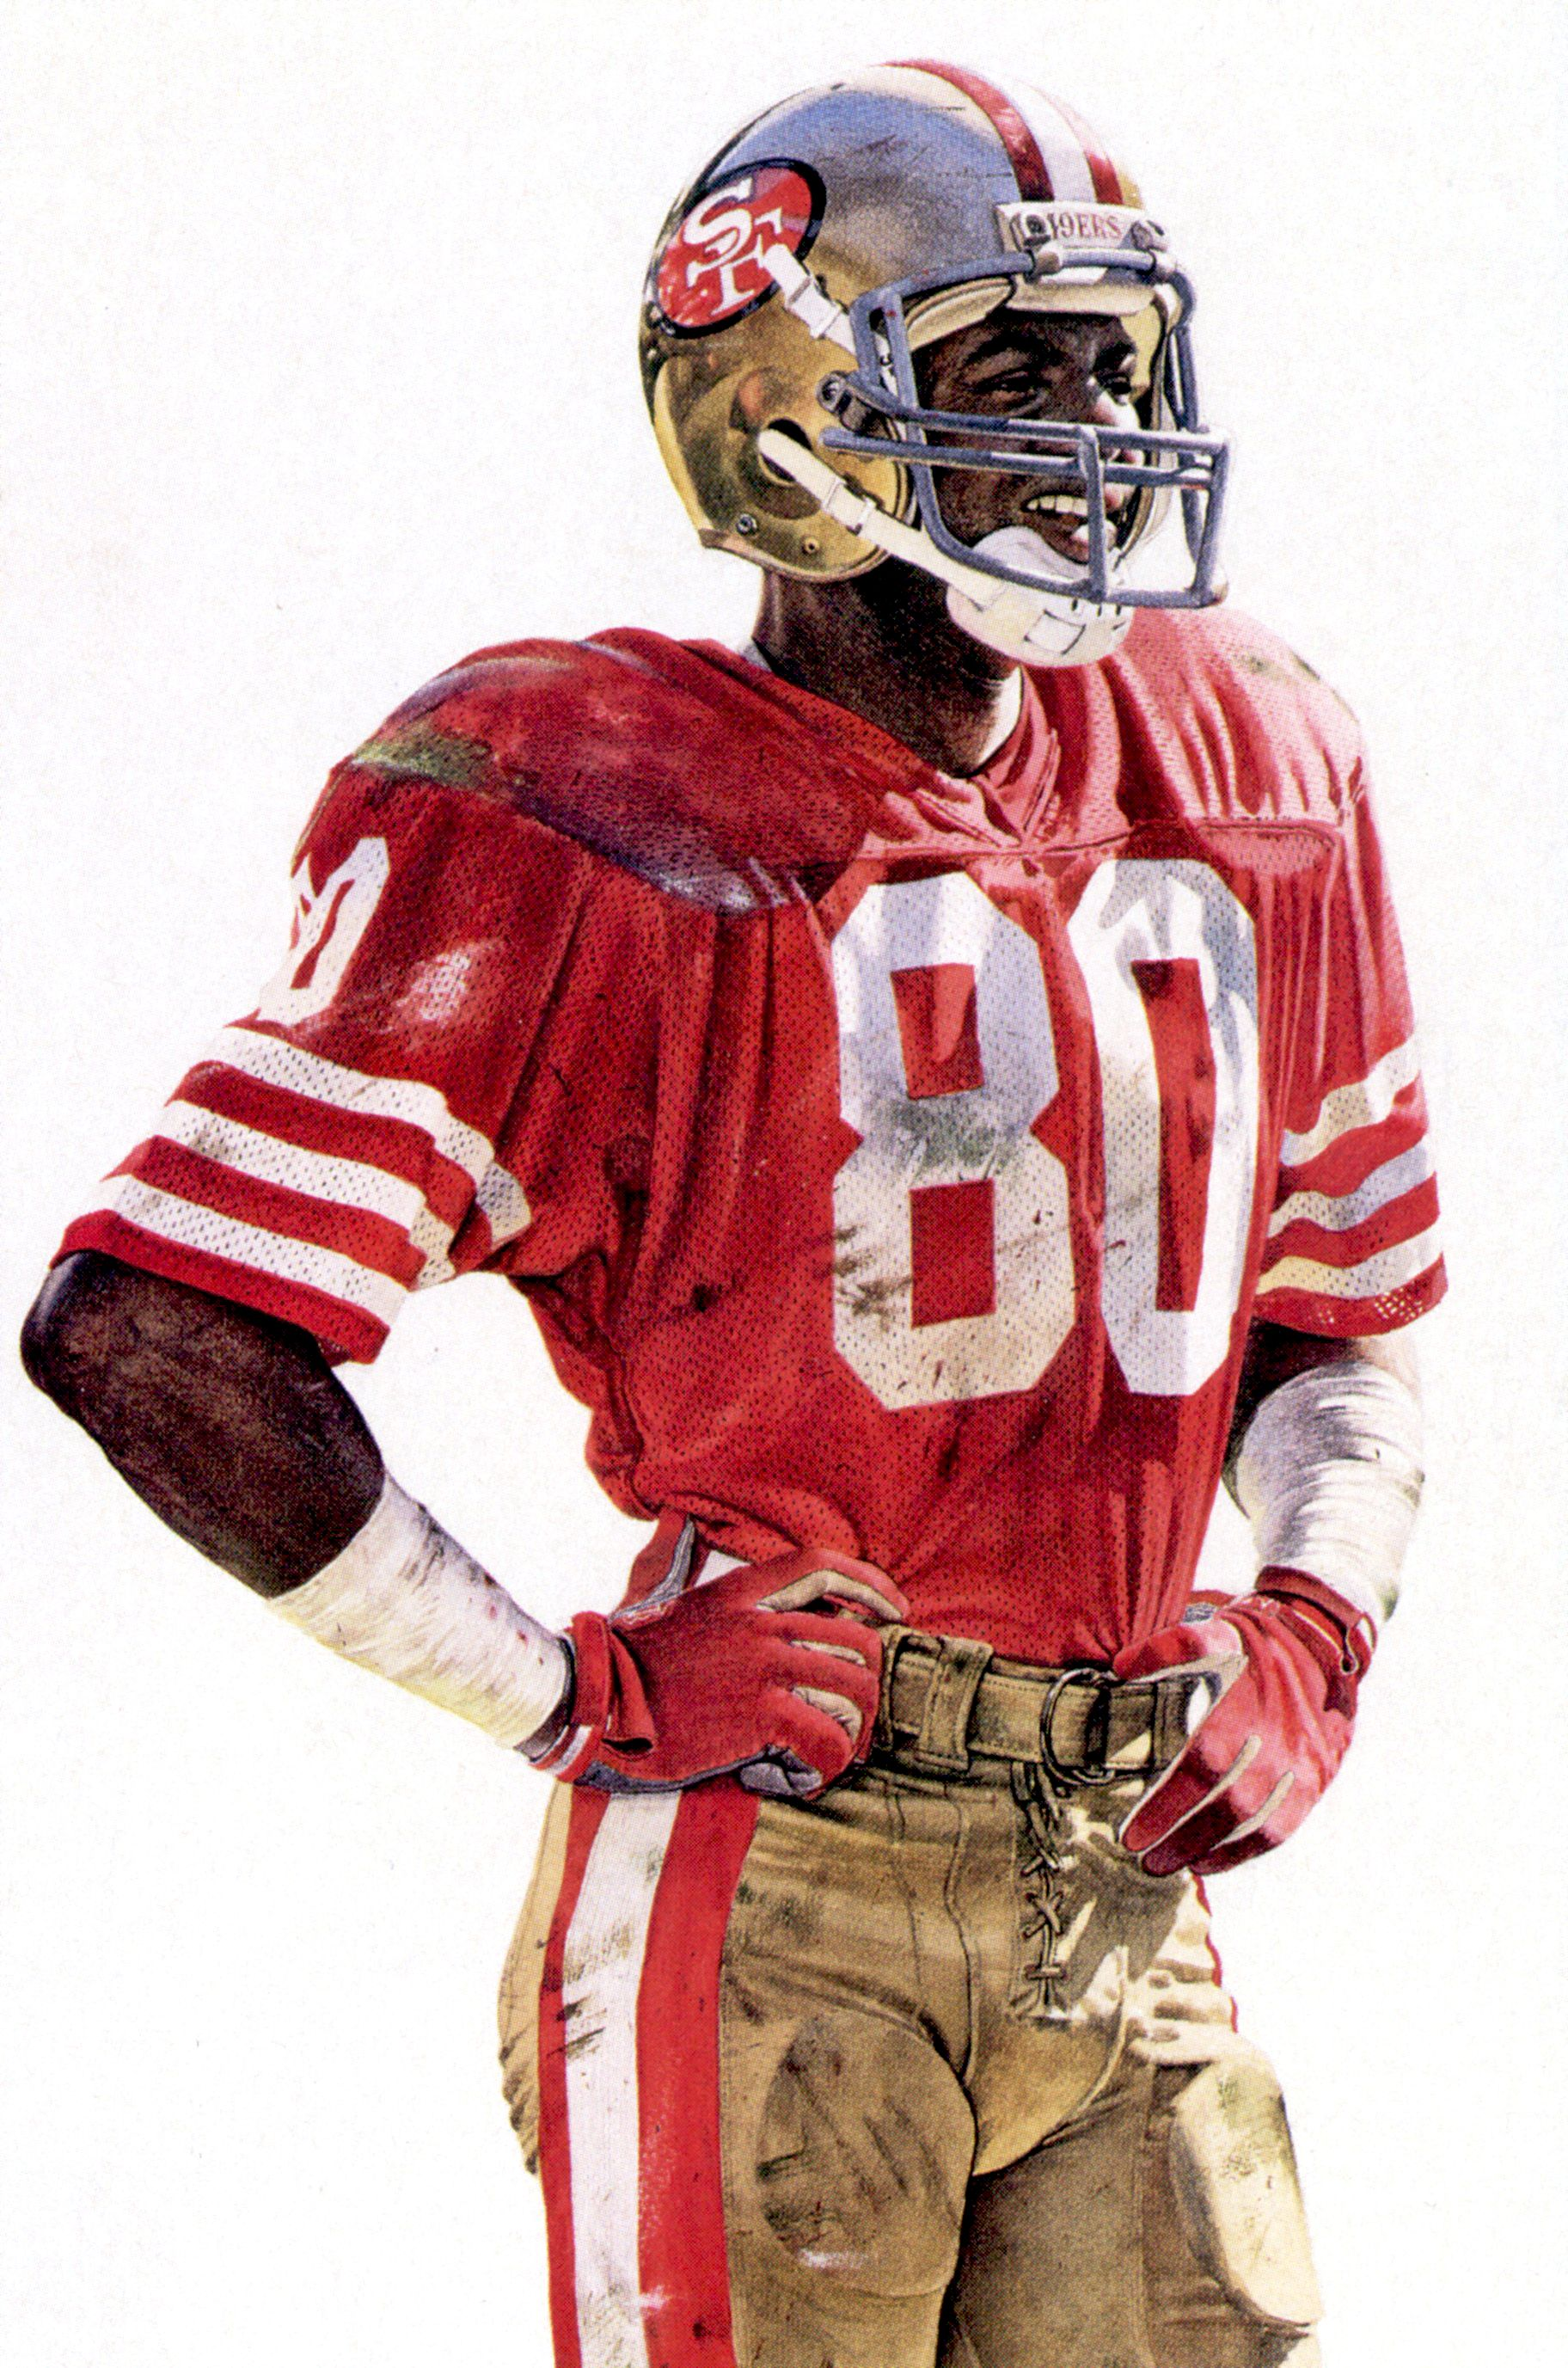 Portrait Of Sf 49ers Jerry Rice By Merv Corning San Francisco 49ers Football Nfl Football 49ers 49ers Football